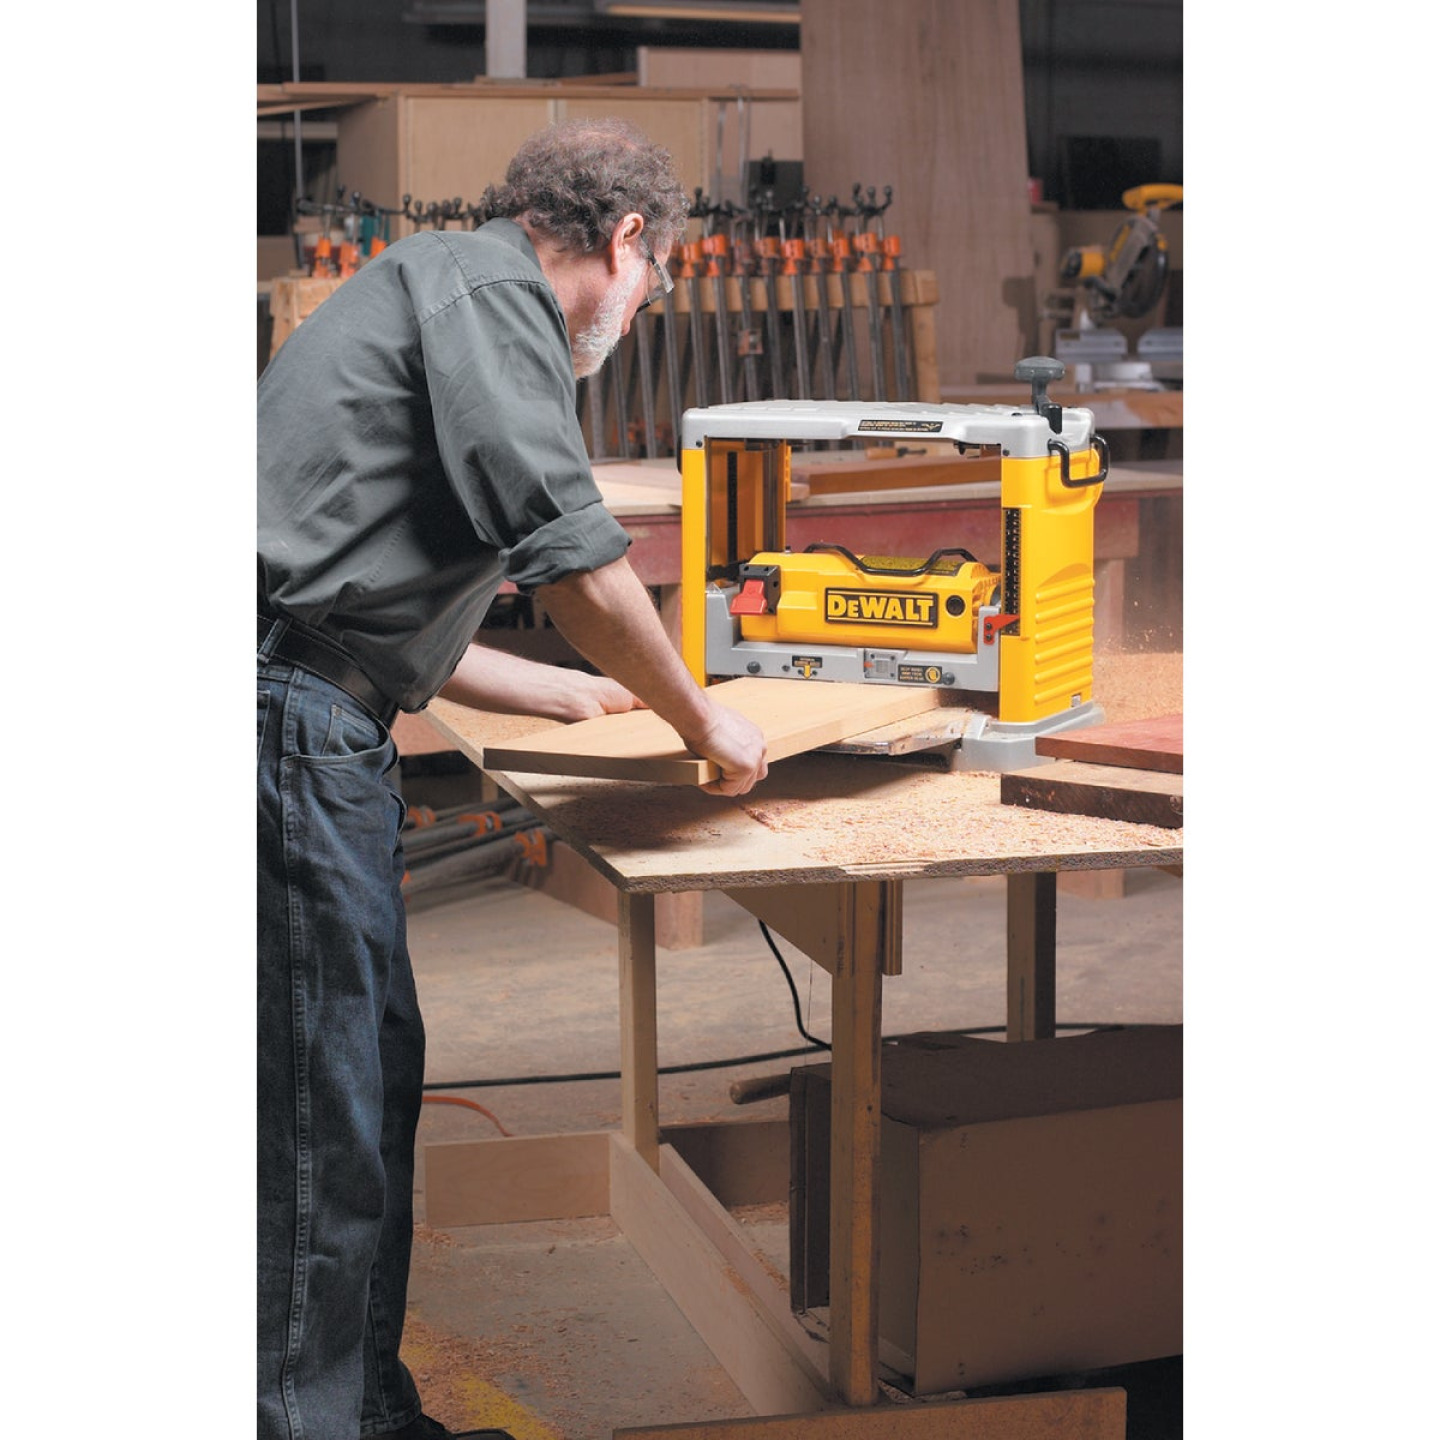 DeWalt 12-1/2 In. Portable Planer Image 2